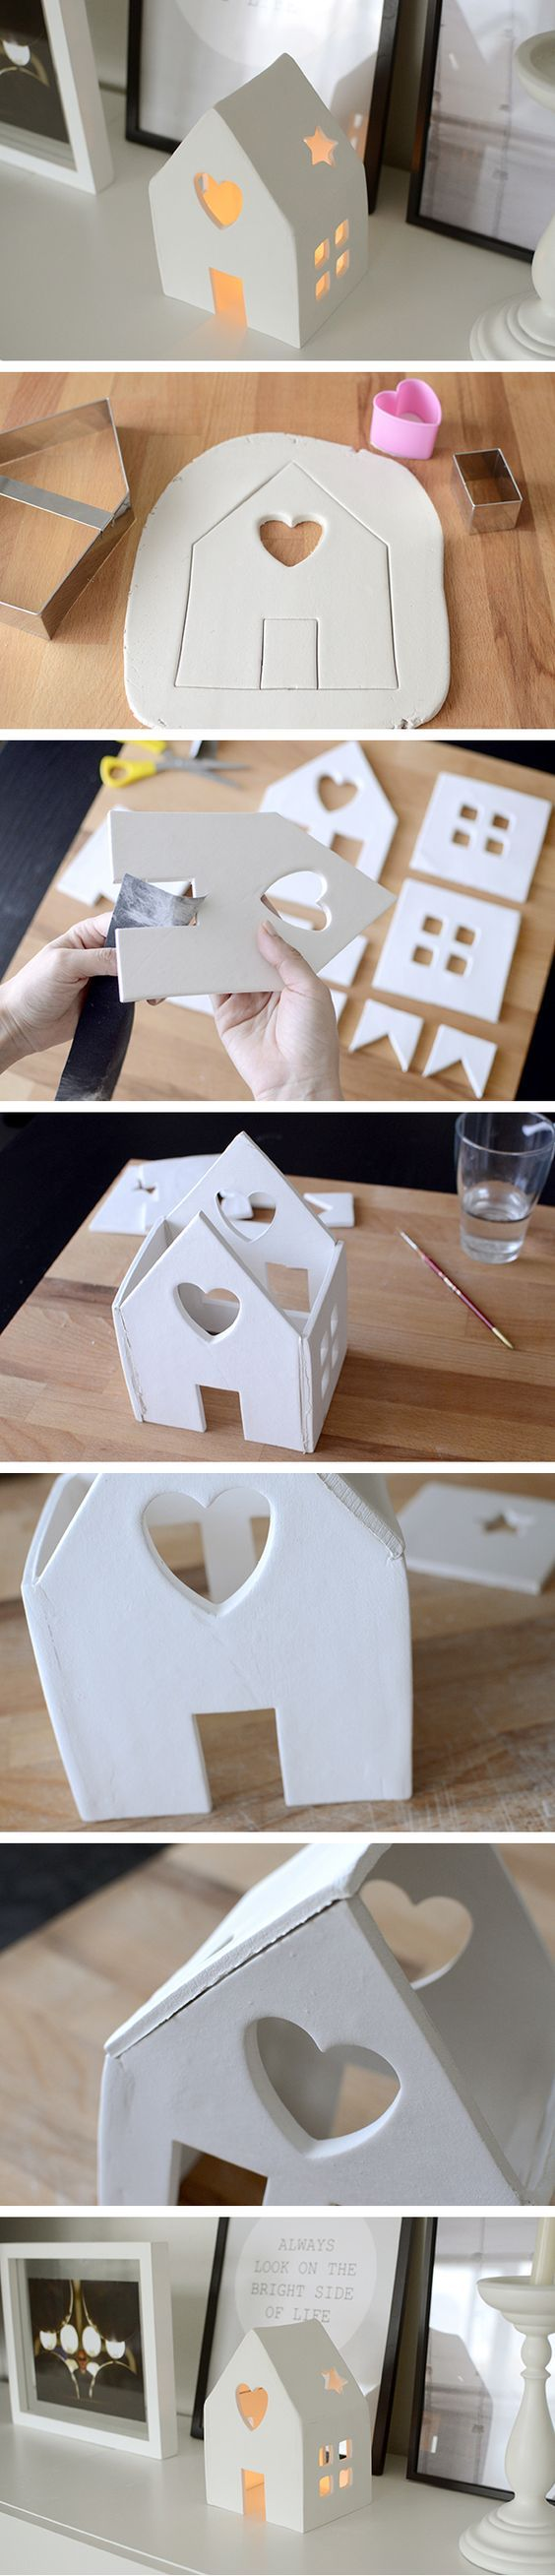 DIY House Candle Holder With Air Dry Clay.